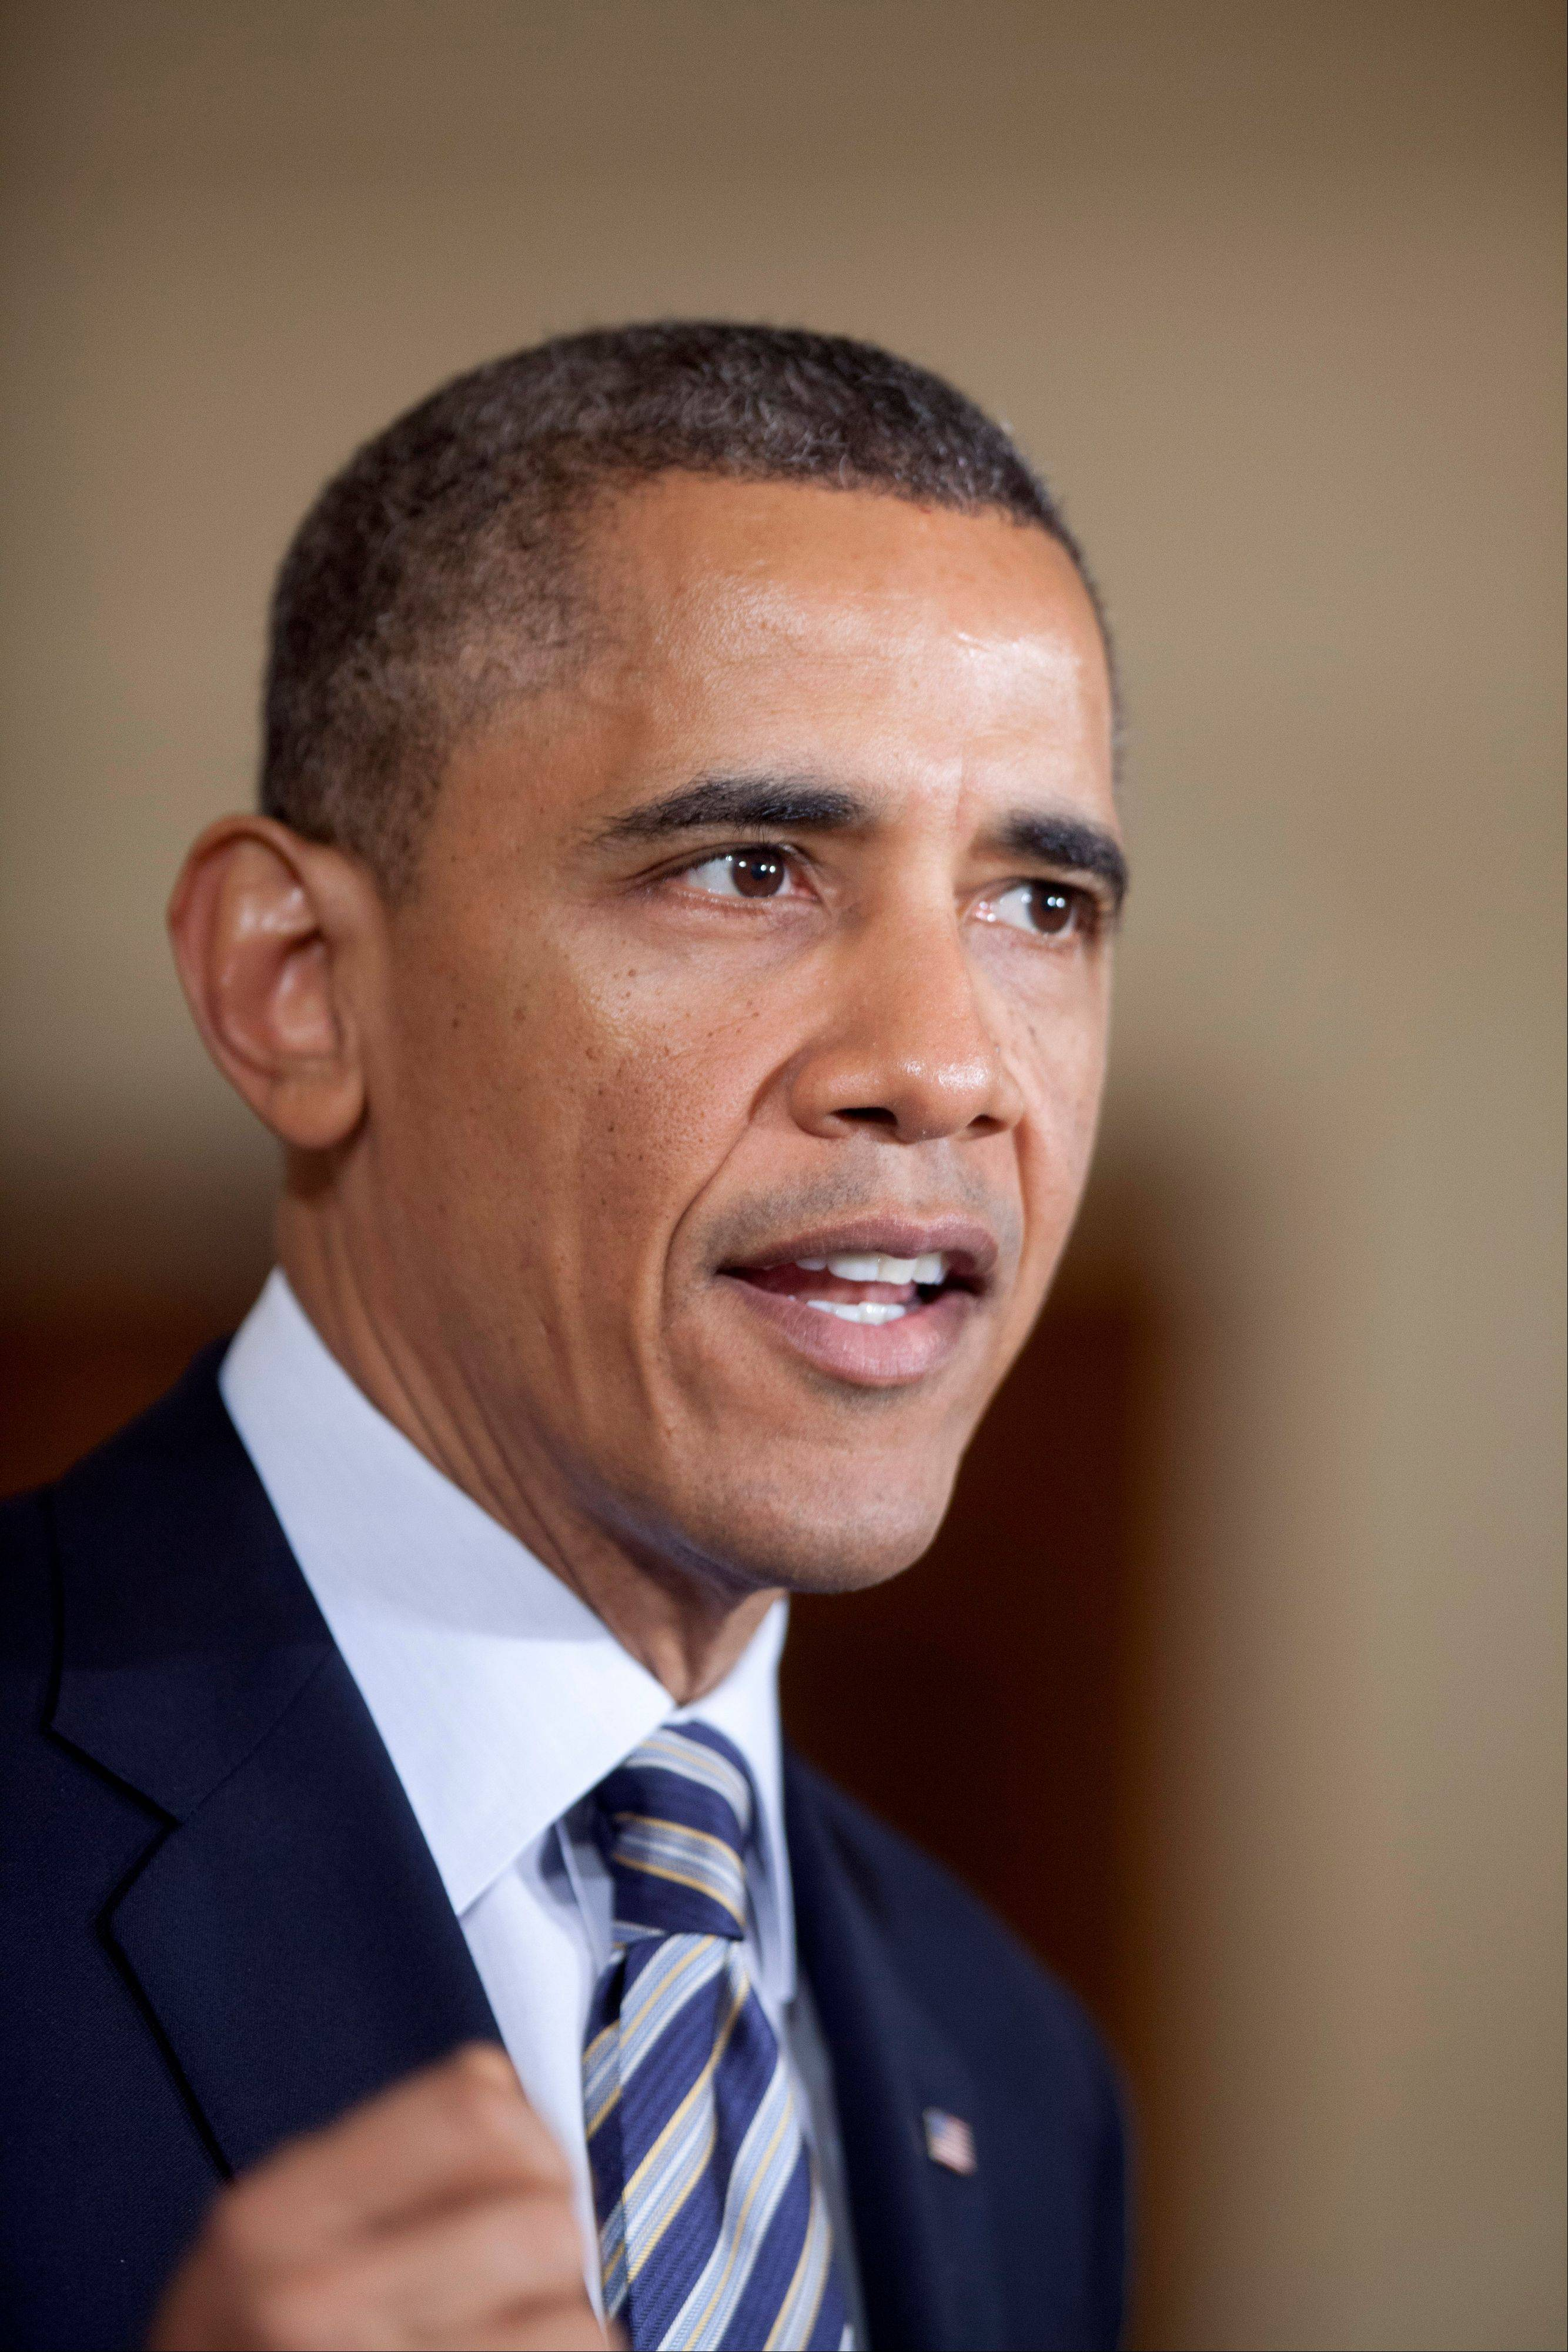 In his quick trip Friday to South Florida, President Obama will try to show the public that the economy remains his top priority in the midst of high-profile campaigns on immigration reform and gun control.